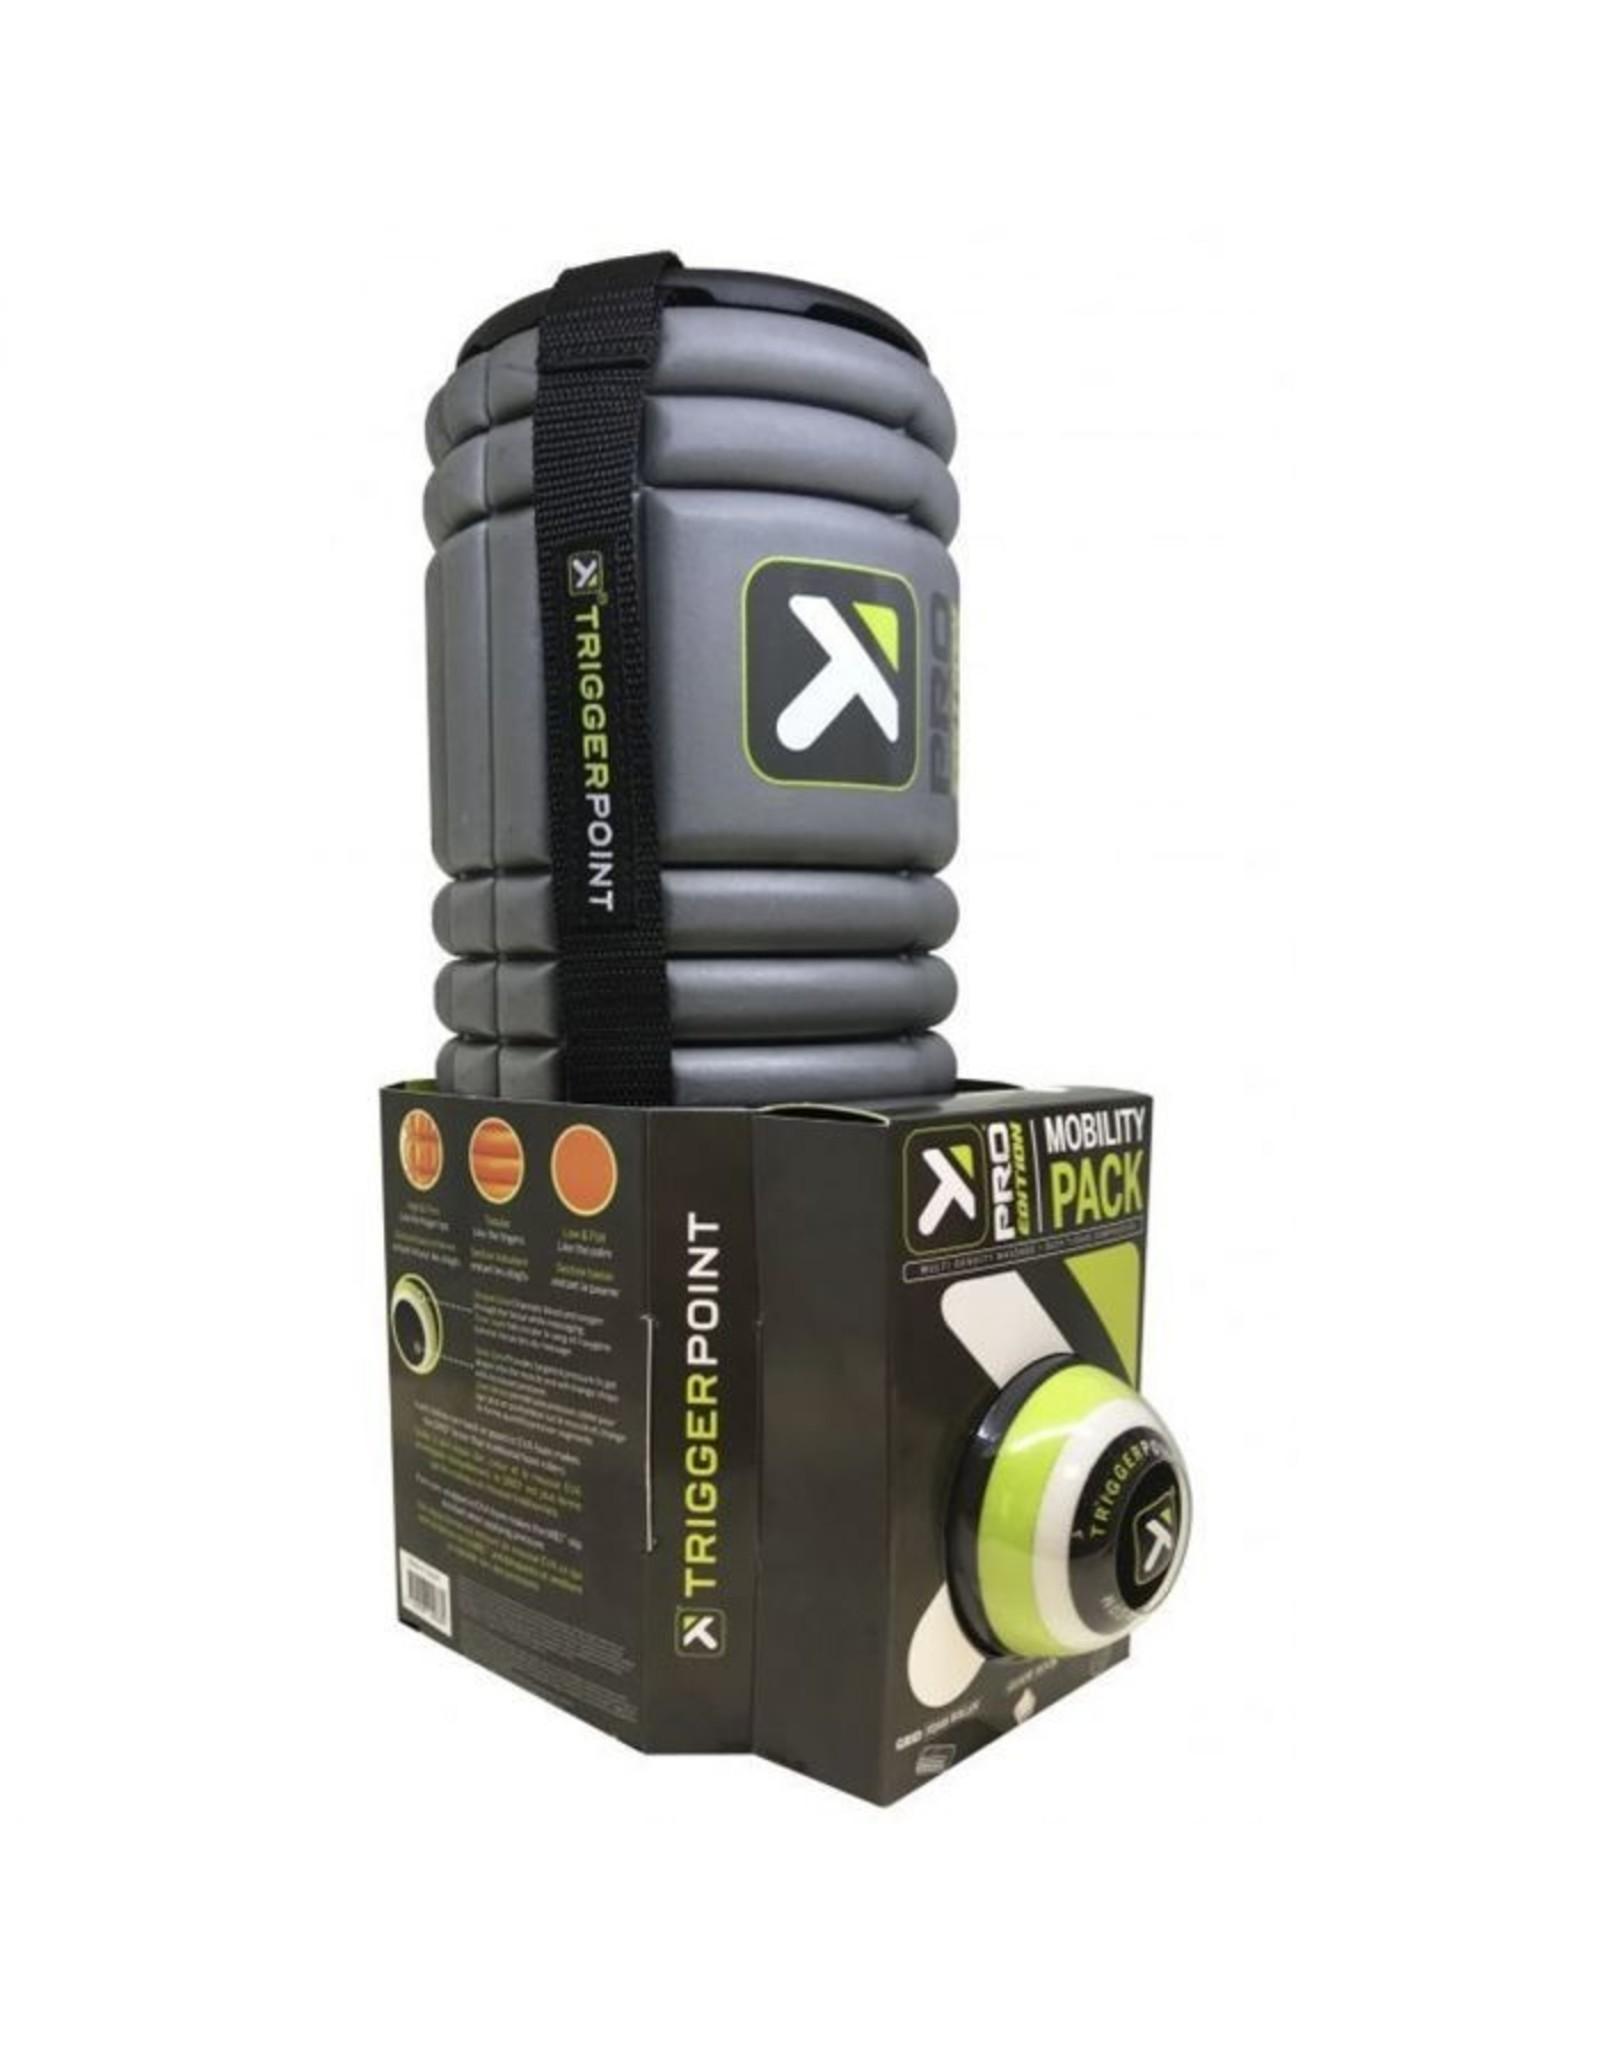 Triggerpoint Triggerpoint Pro Mobility Pack